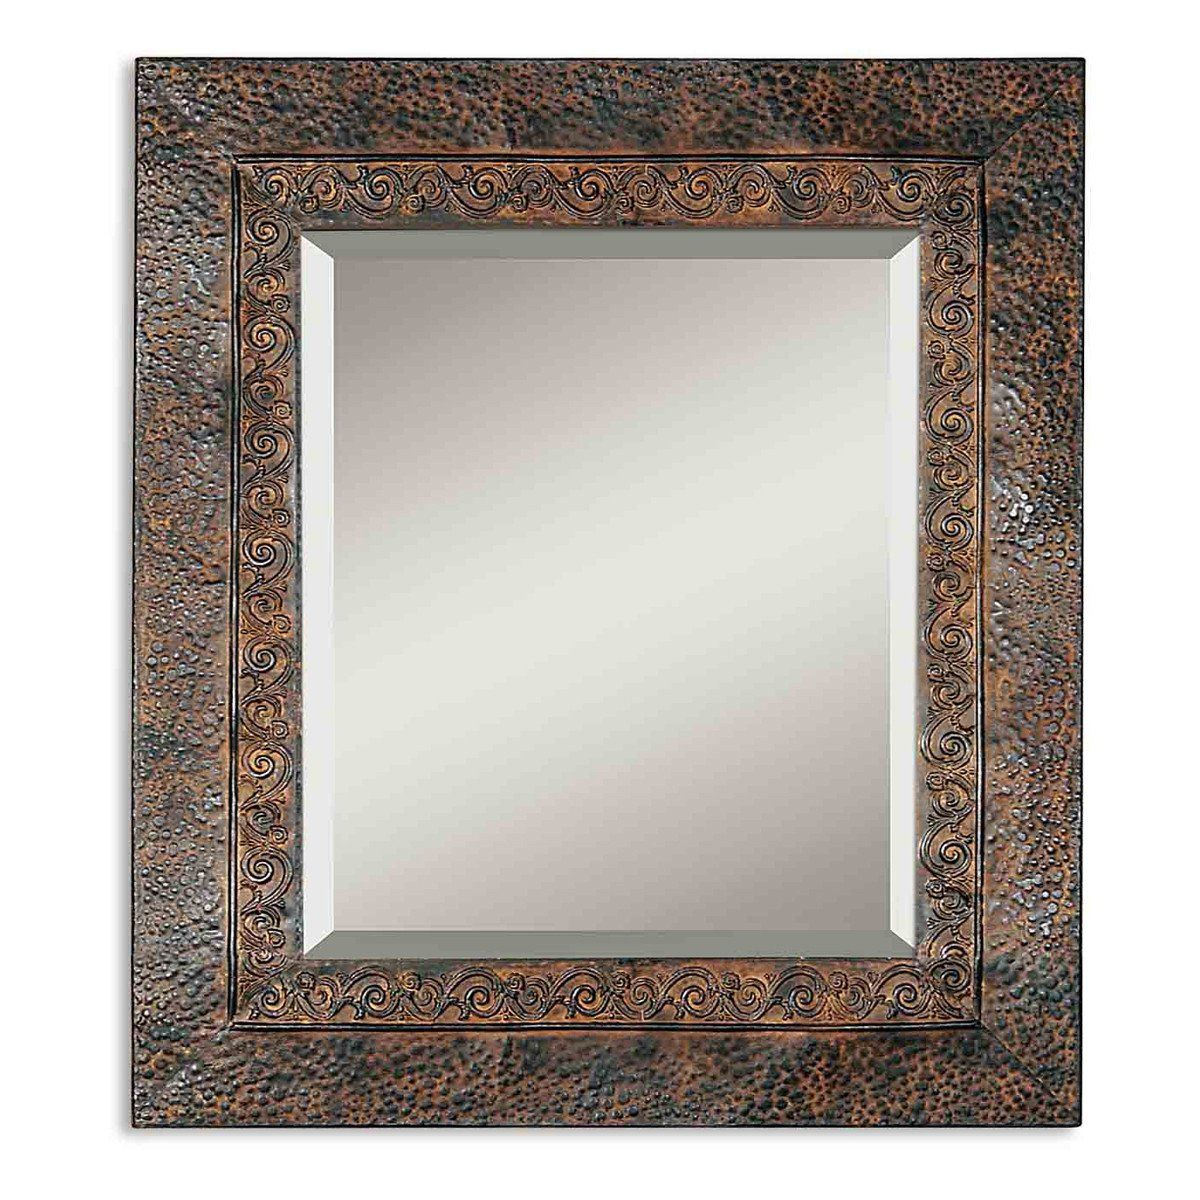 Jackson Rustic Metal Mirror | Who Put Me Up To This? | Brown Inside Kristy Rectangular Beveled Vanity Mirrors In Distressed (Image 13 of 20)